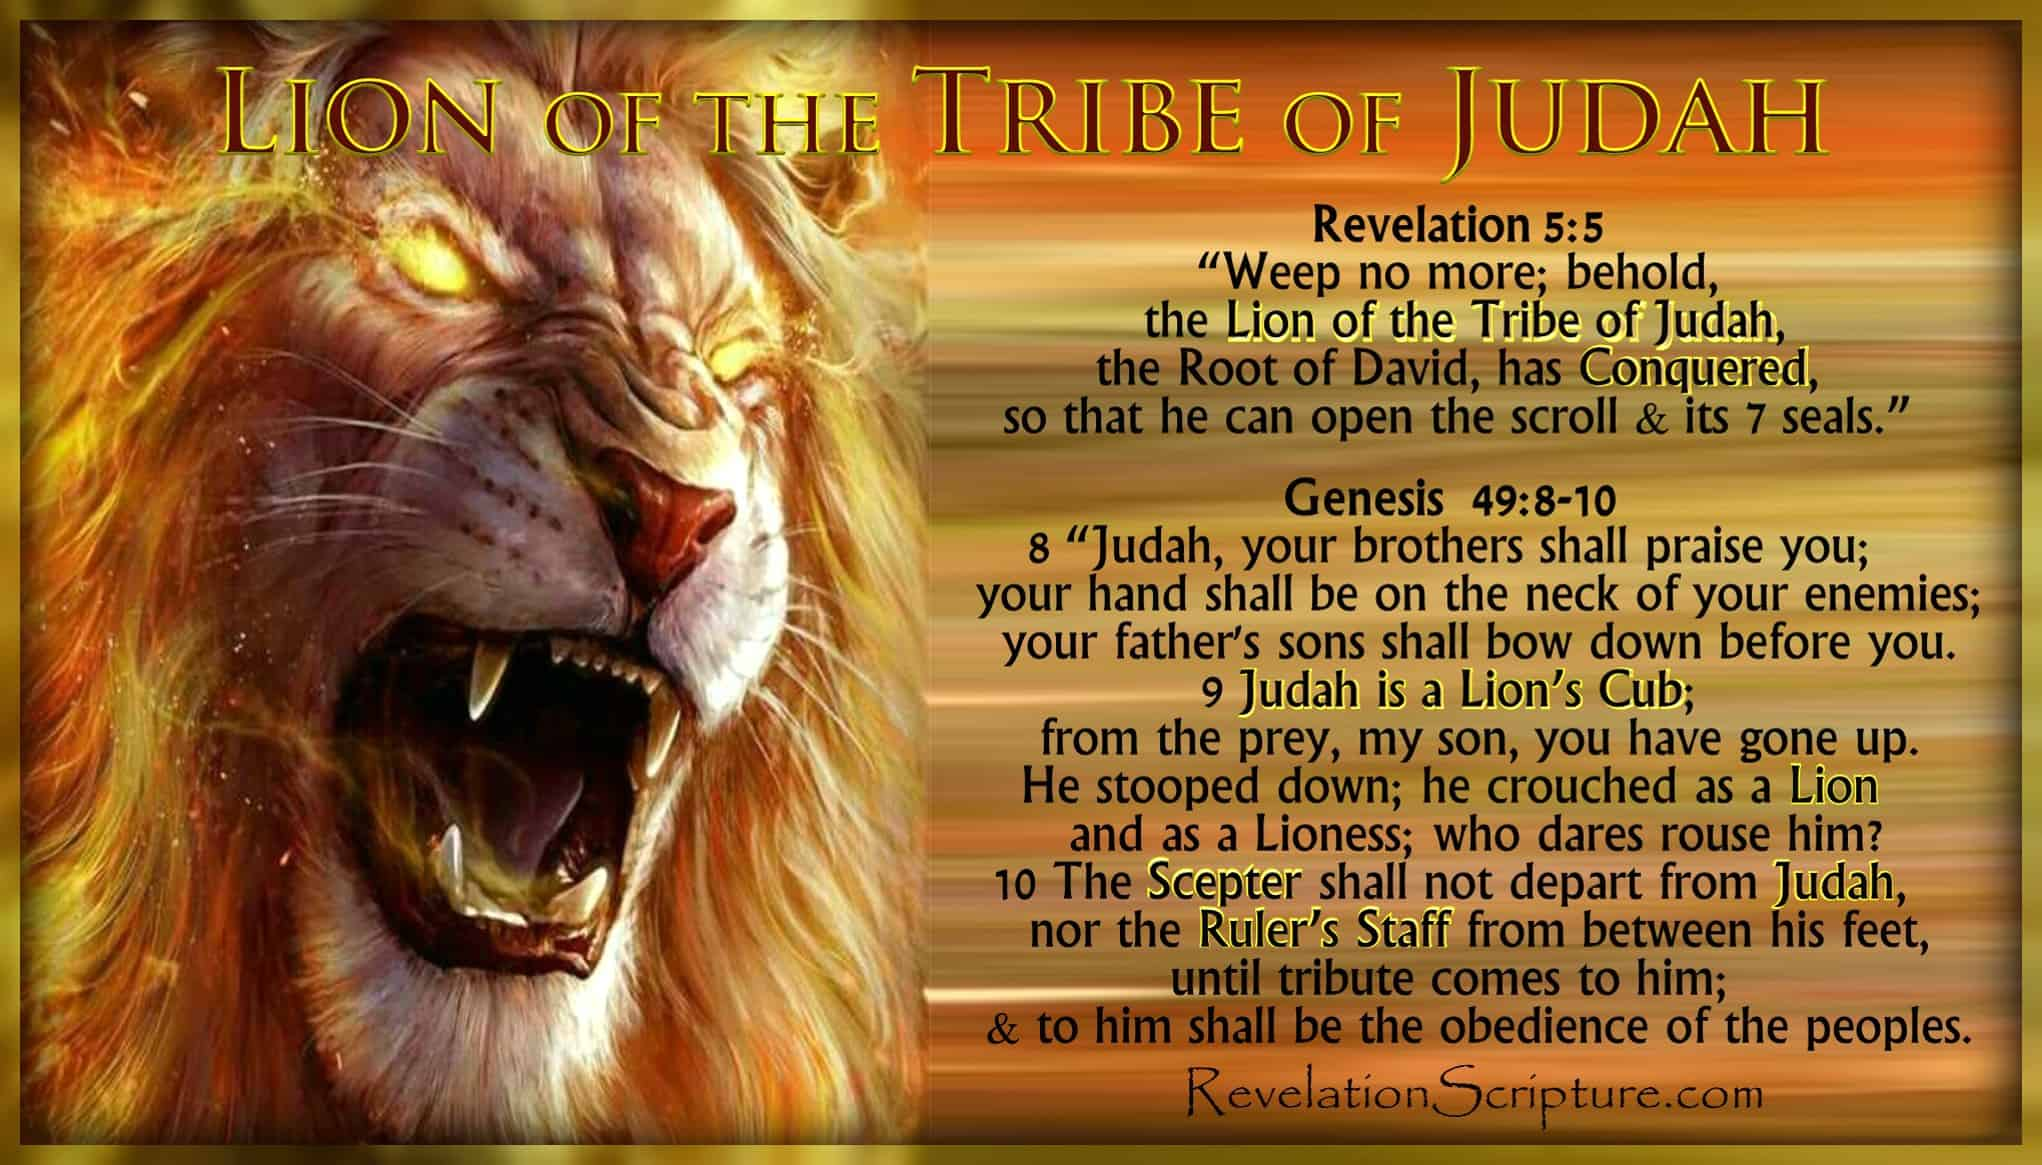 Lion of the Tribe of Judah,Judah,Lion,Revelation 5,Genesis 49,Gen 49,Rev 5,Jesus,Christ,Conquered,Overcame,Root of David,Lion Cub,Scepter,Ruler's Staff